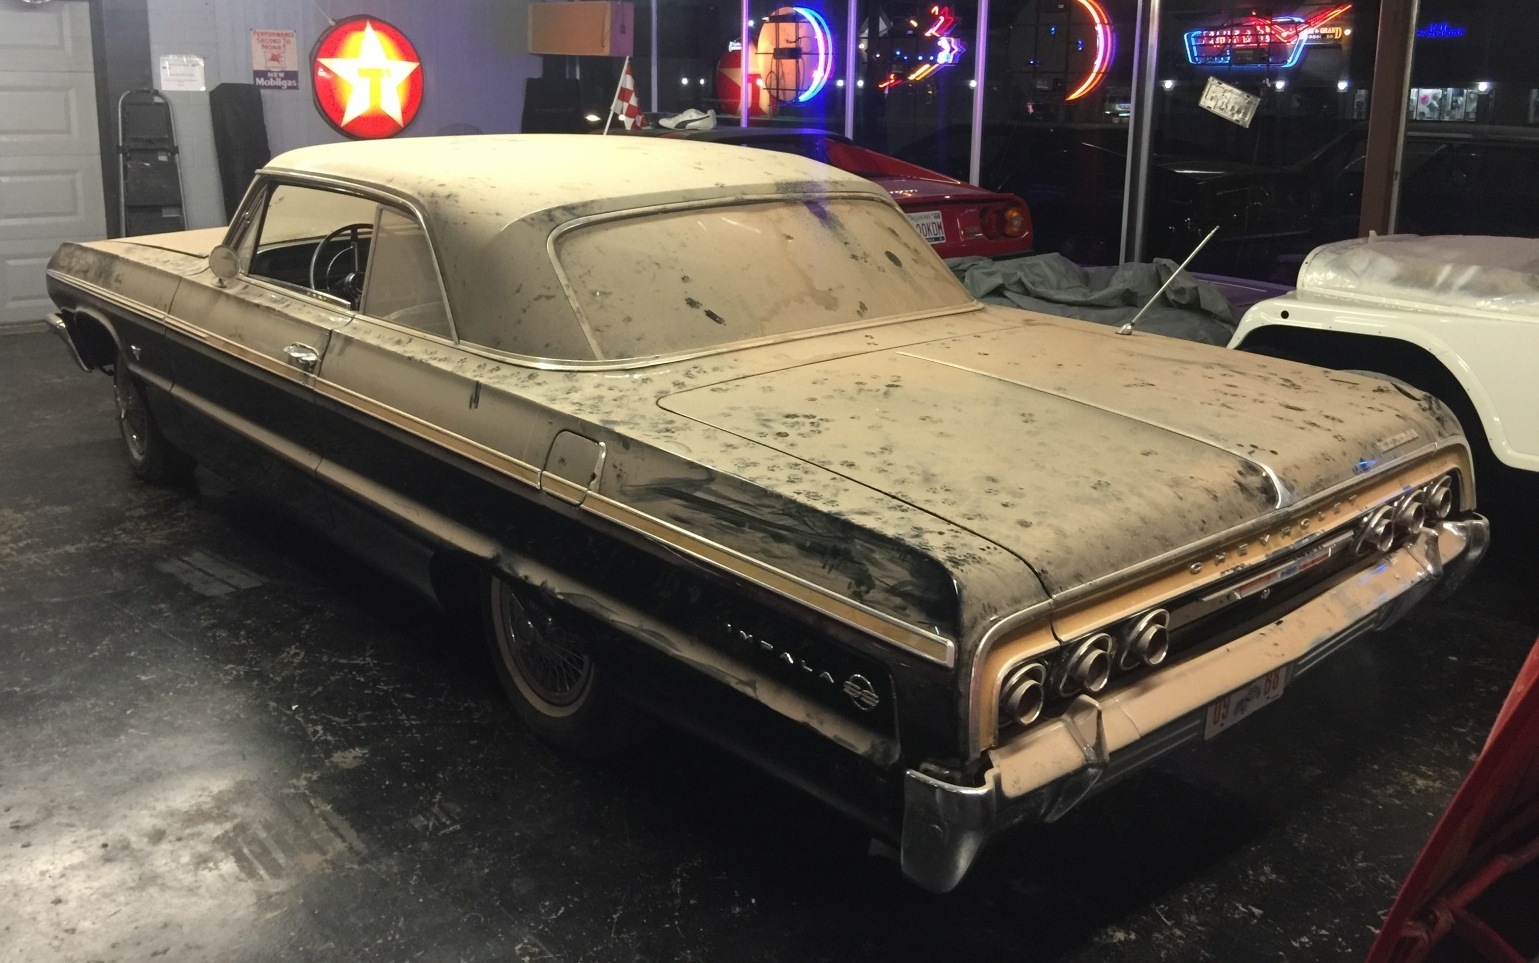 EXCLUSIVE: 1964 Chevrolet Impala SS